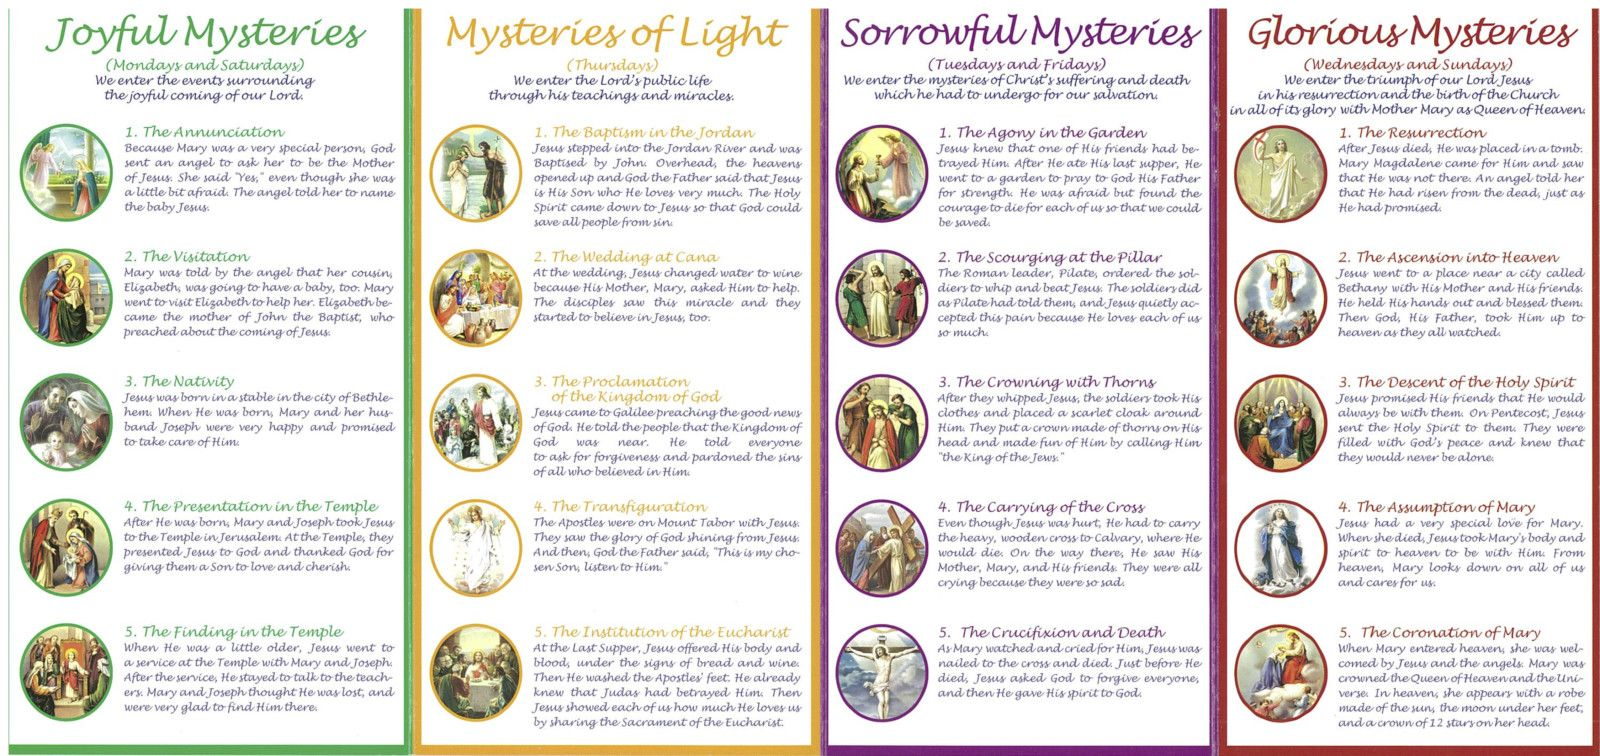 Stupendous image pertaining to mysteries of the rosary printable